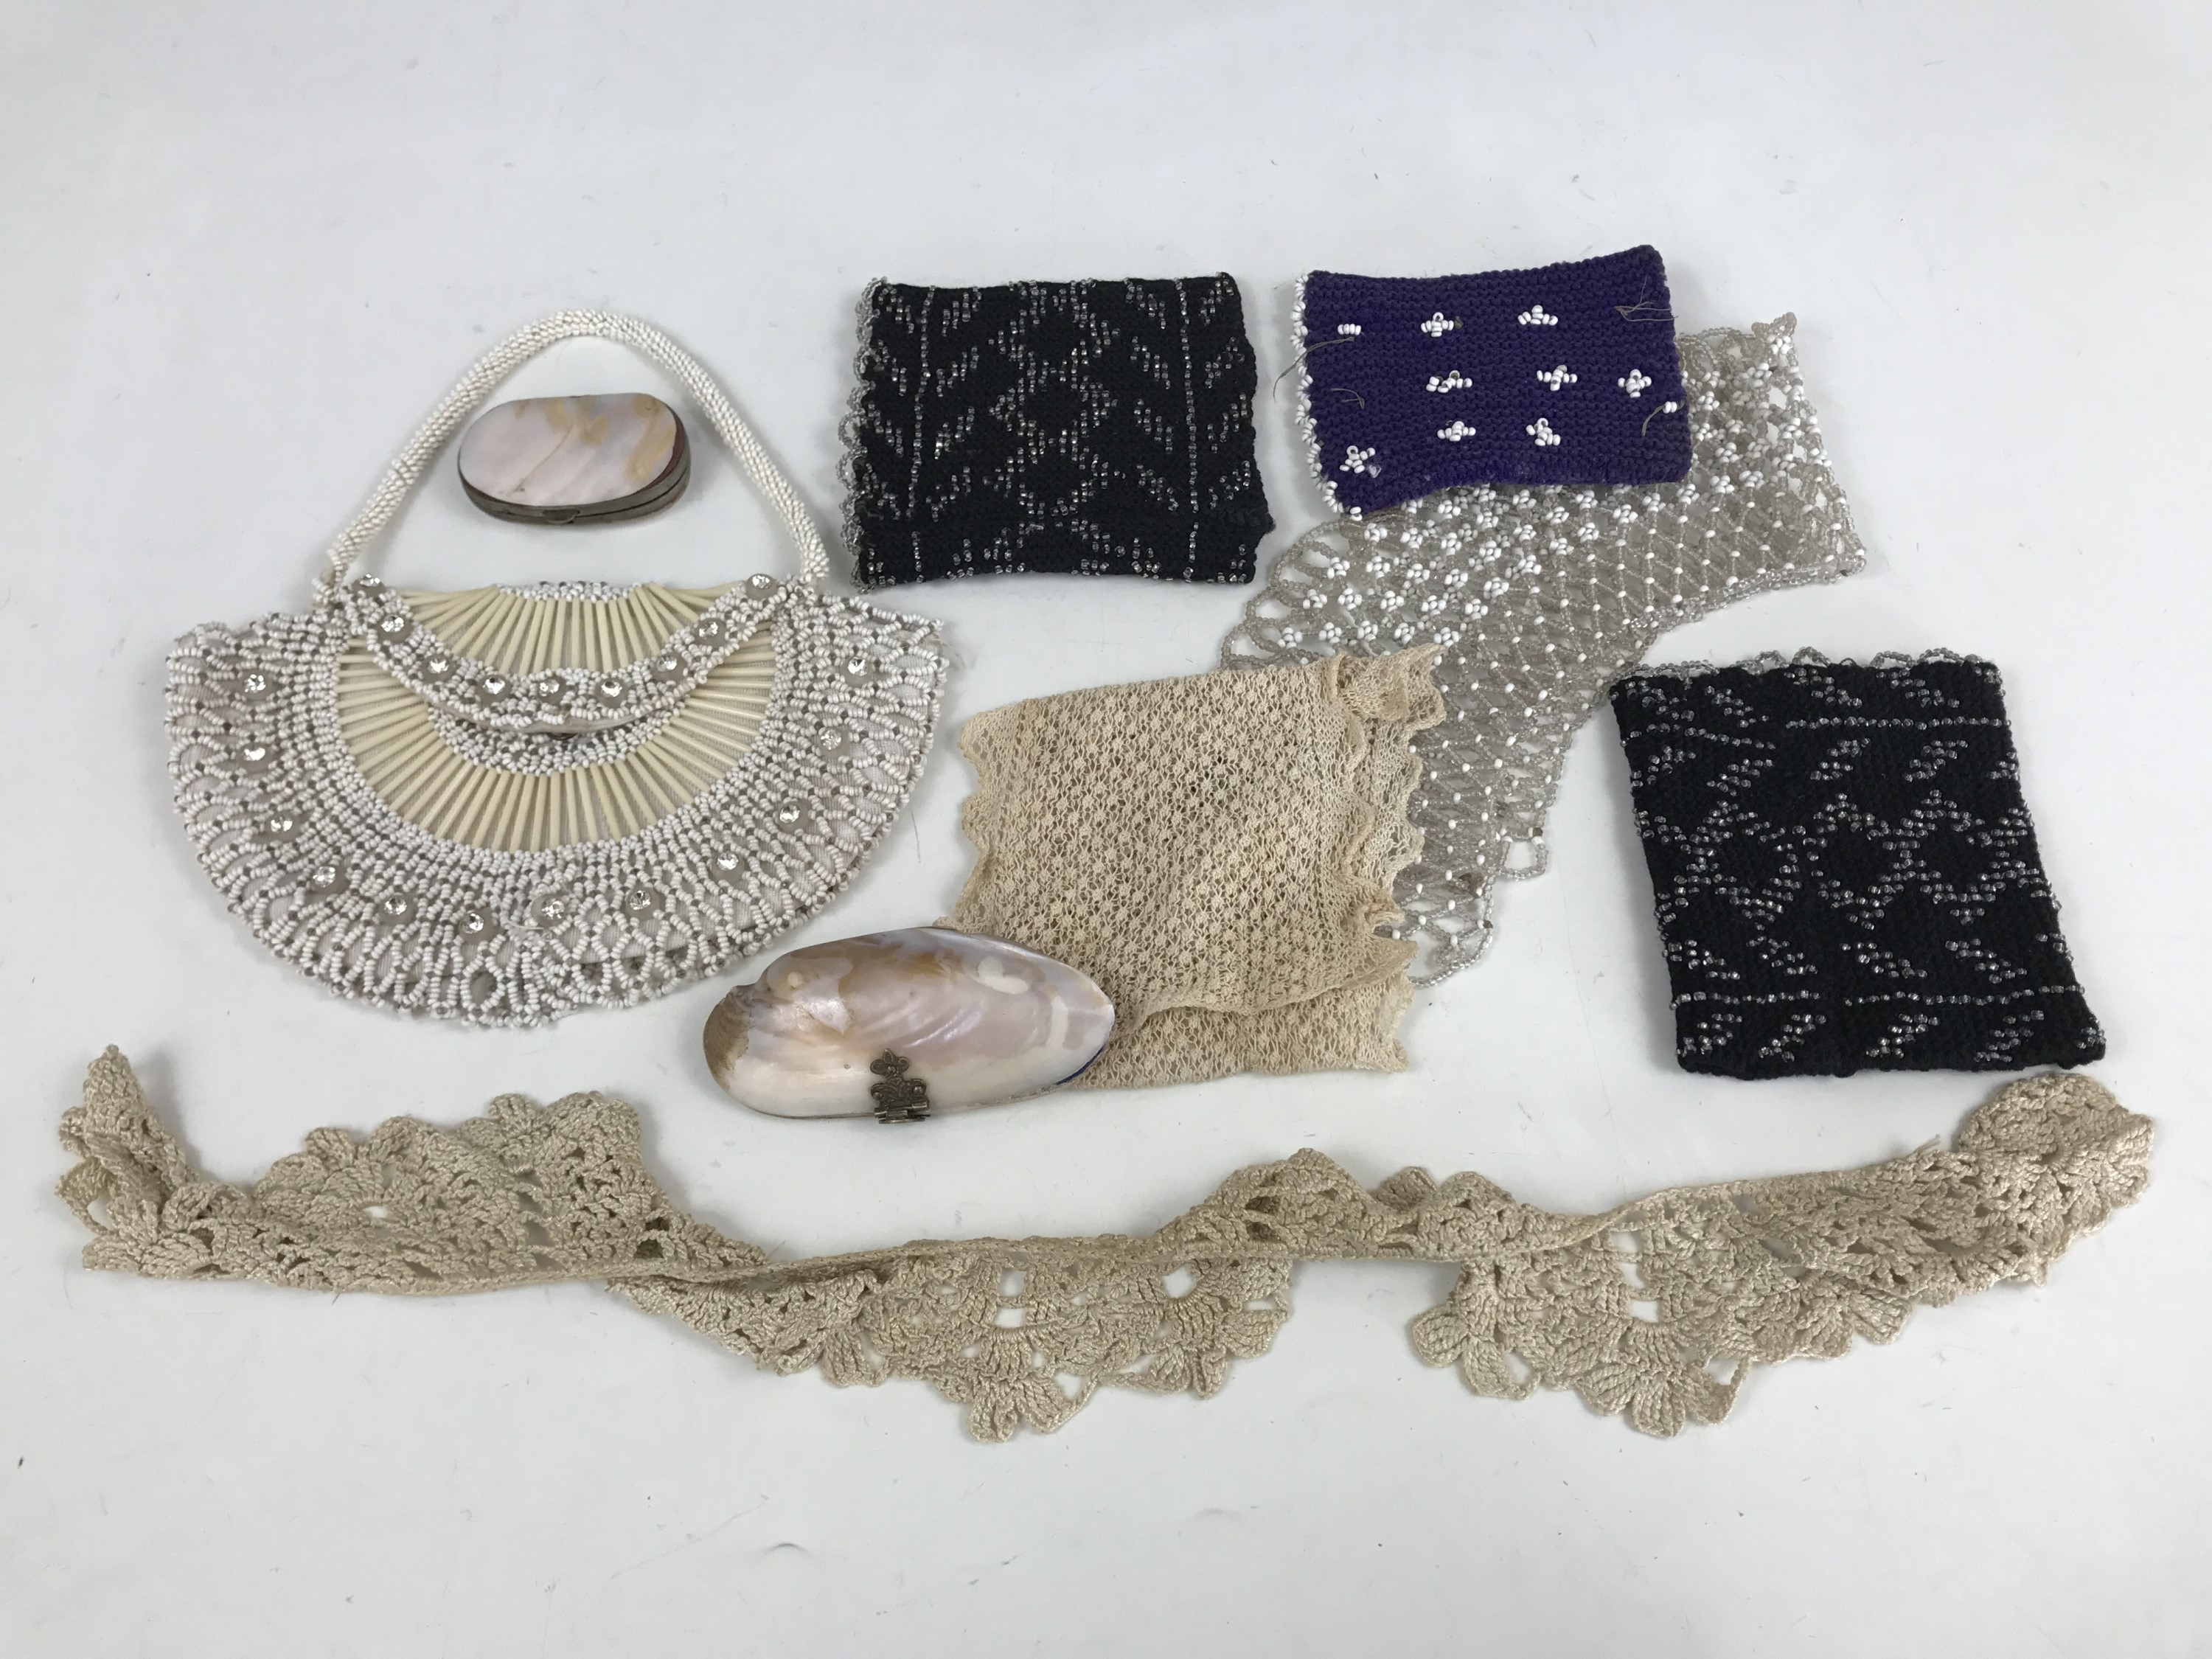 Lot 8 - Victorian costume accessories including beadwork embroidered cuffs, two shell coin purses, beaded